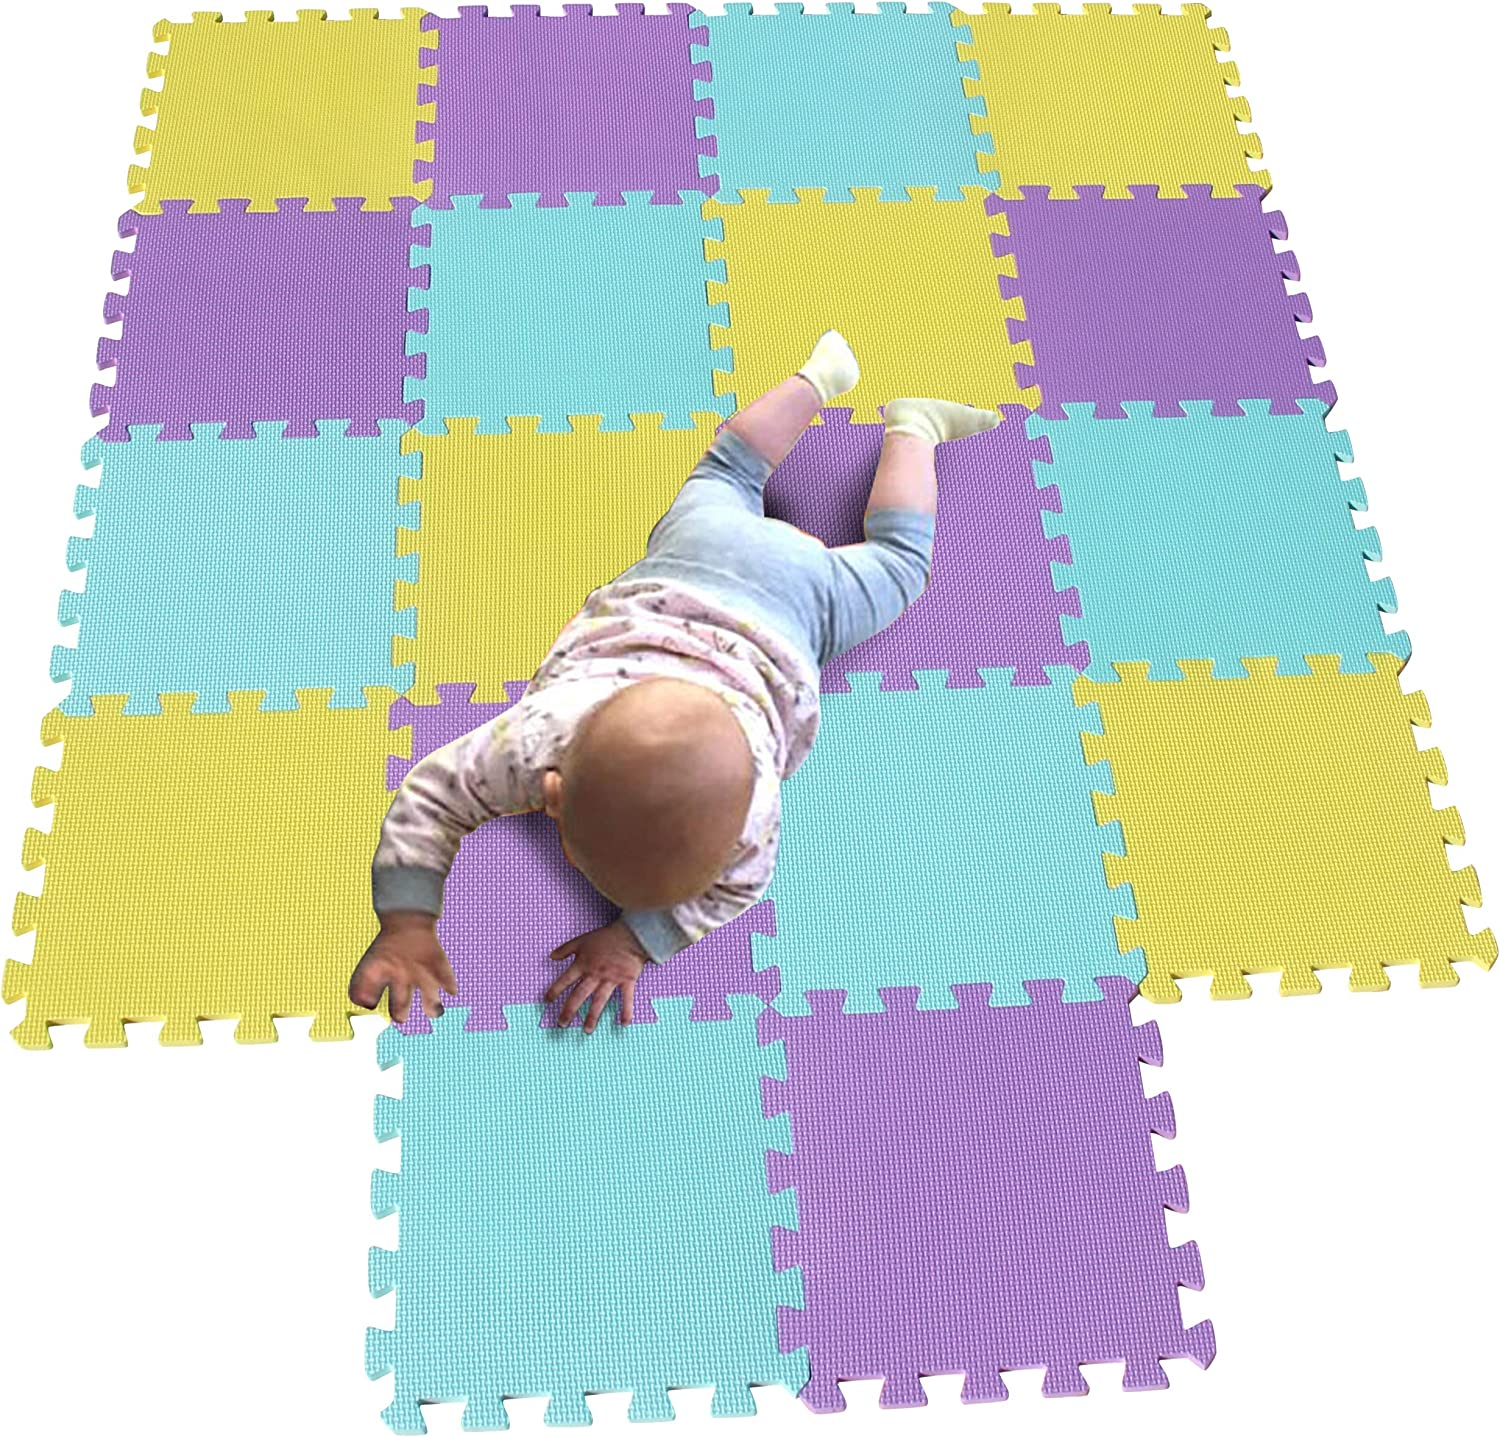 MQIAOHAM Children Puzzle mat Squares Popular brand Tiles Max 60% OFF Bab Play